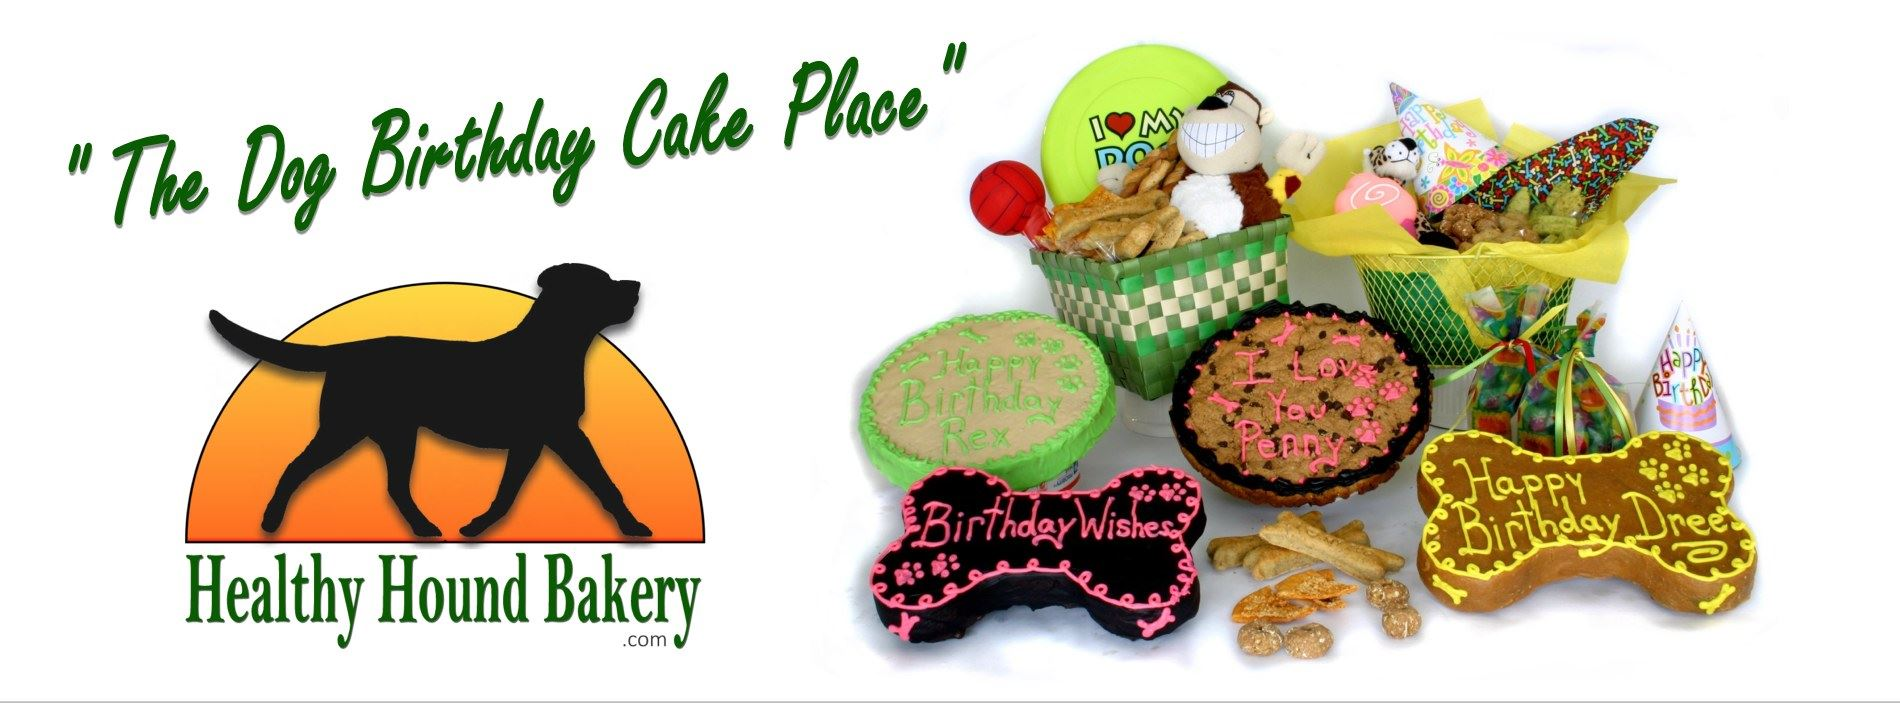 Tremendous Healthy Hound Bakery Treats That Are Healthy For Your Dog Funny Birthday Cards Online Inifodamsfinfo